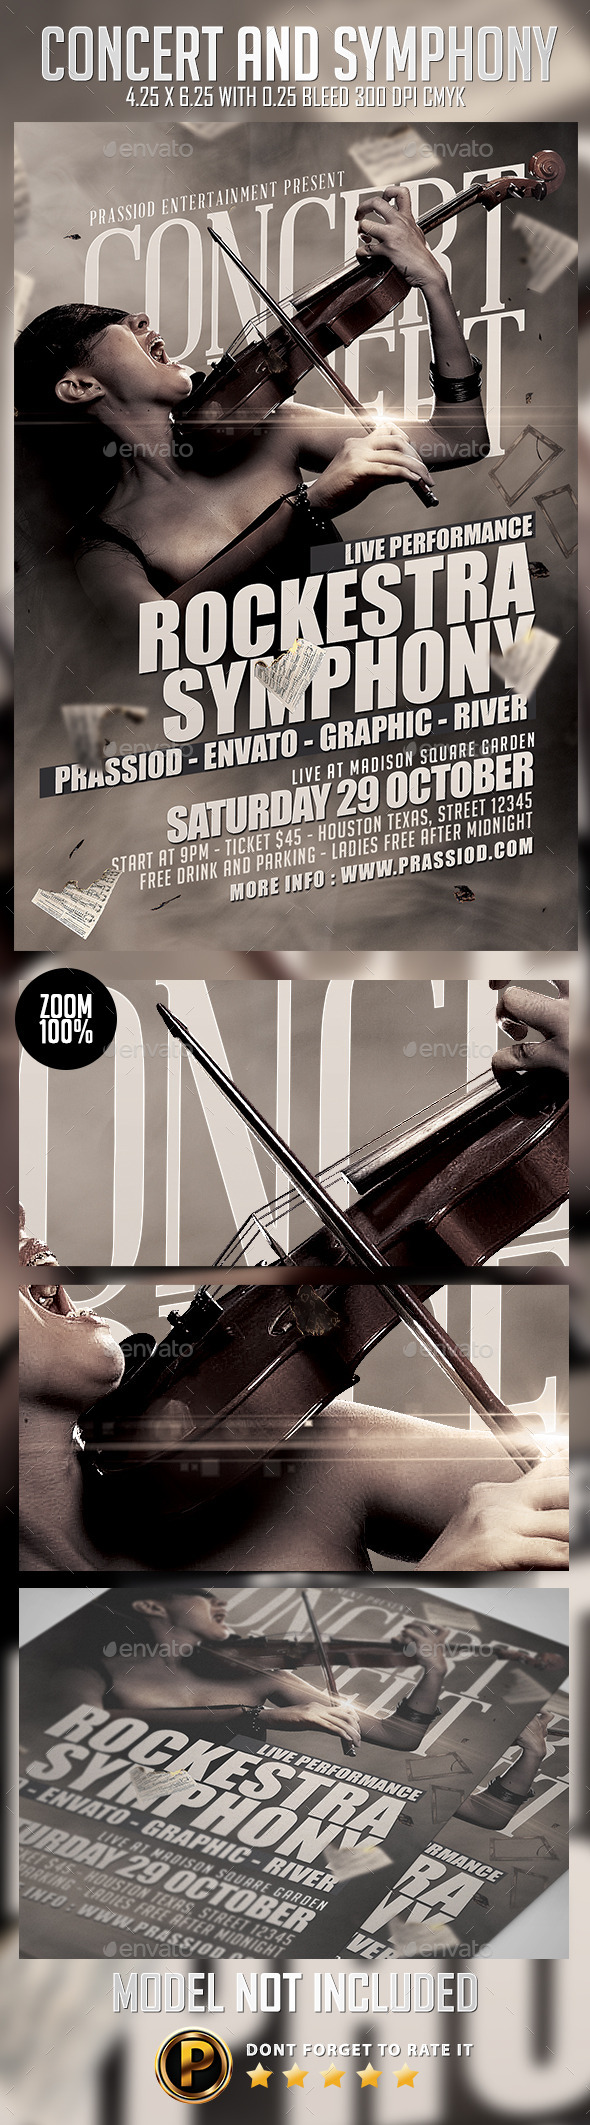 Concert And Symphony Flyer Template - Concerts Events